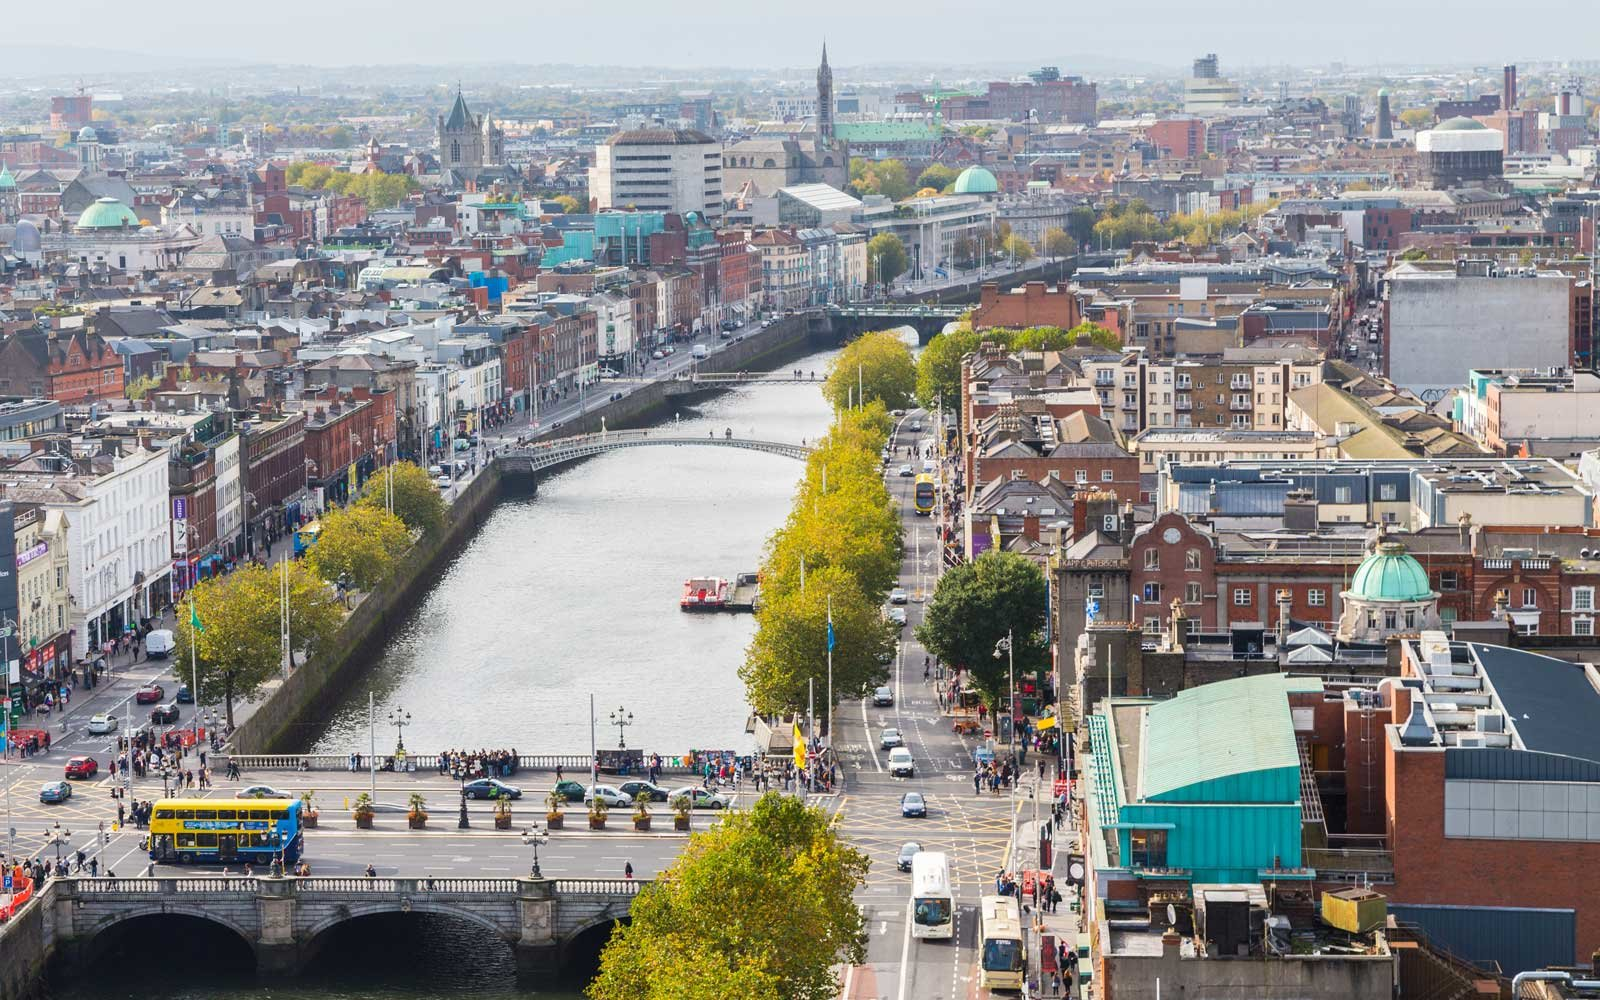 Norwegian Has $99 Flights to Ireland to Celebrate St. Patrick's Day